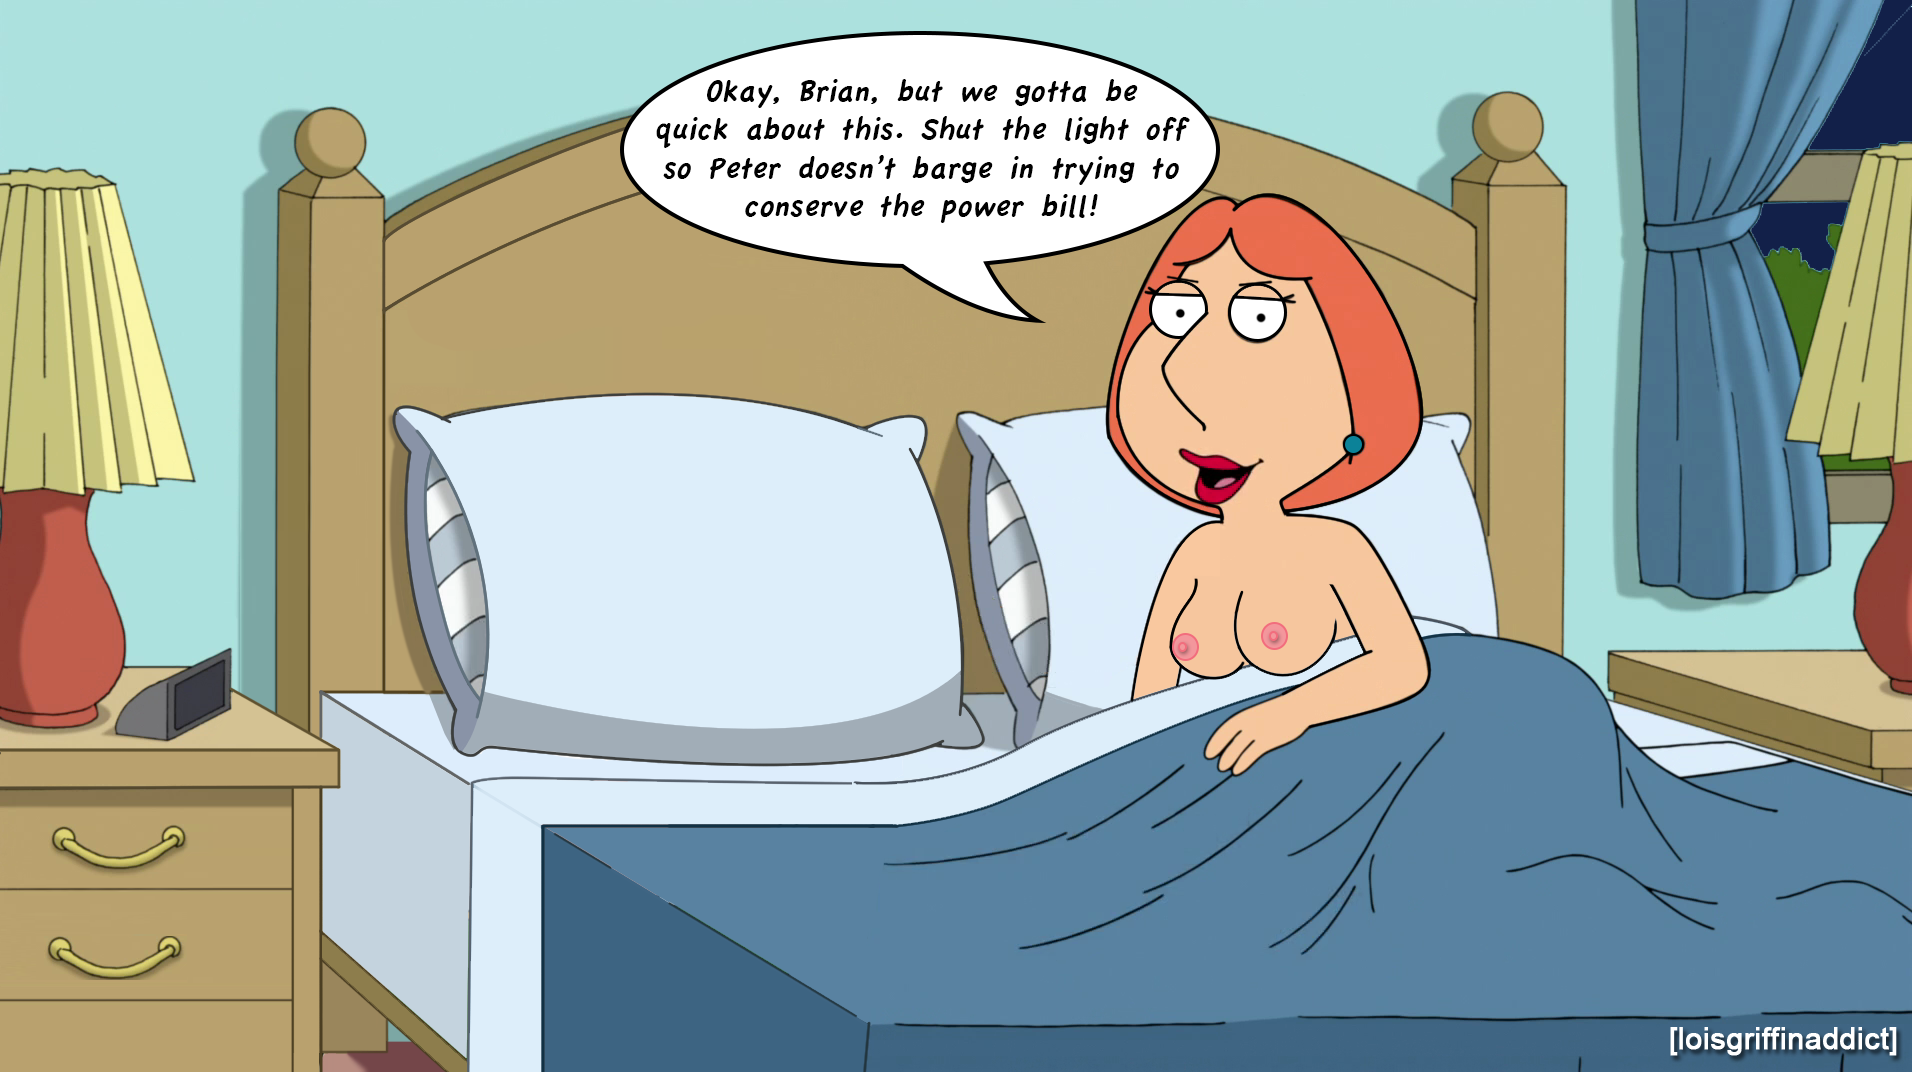 Lois griffin gets her pussy pounded by stevie the door to door cookie salesman